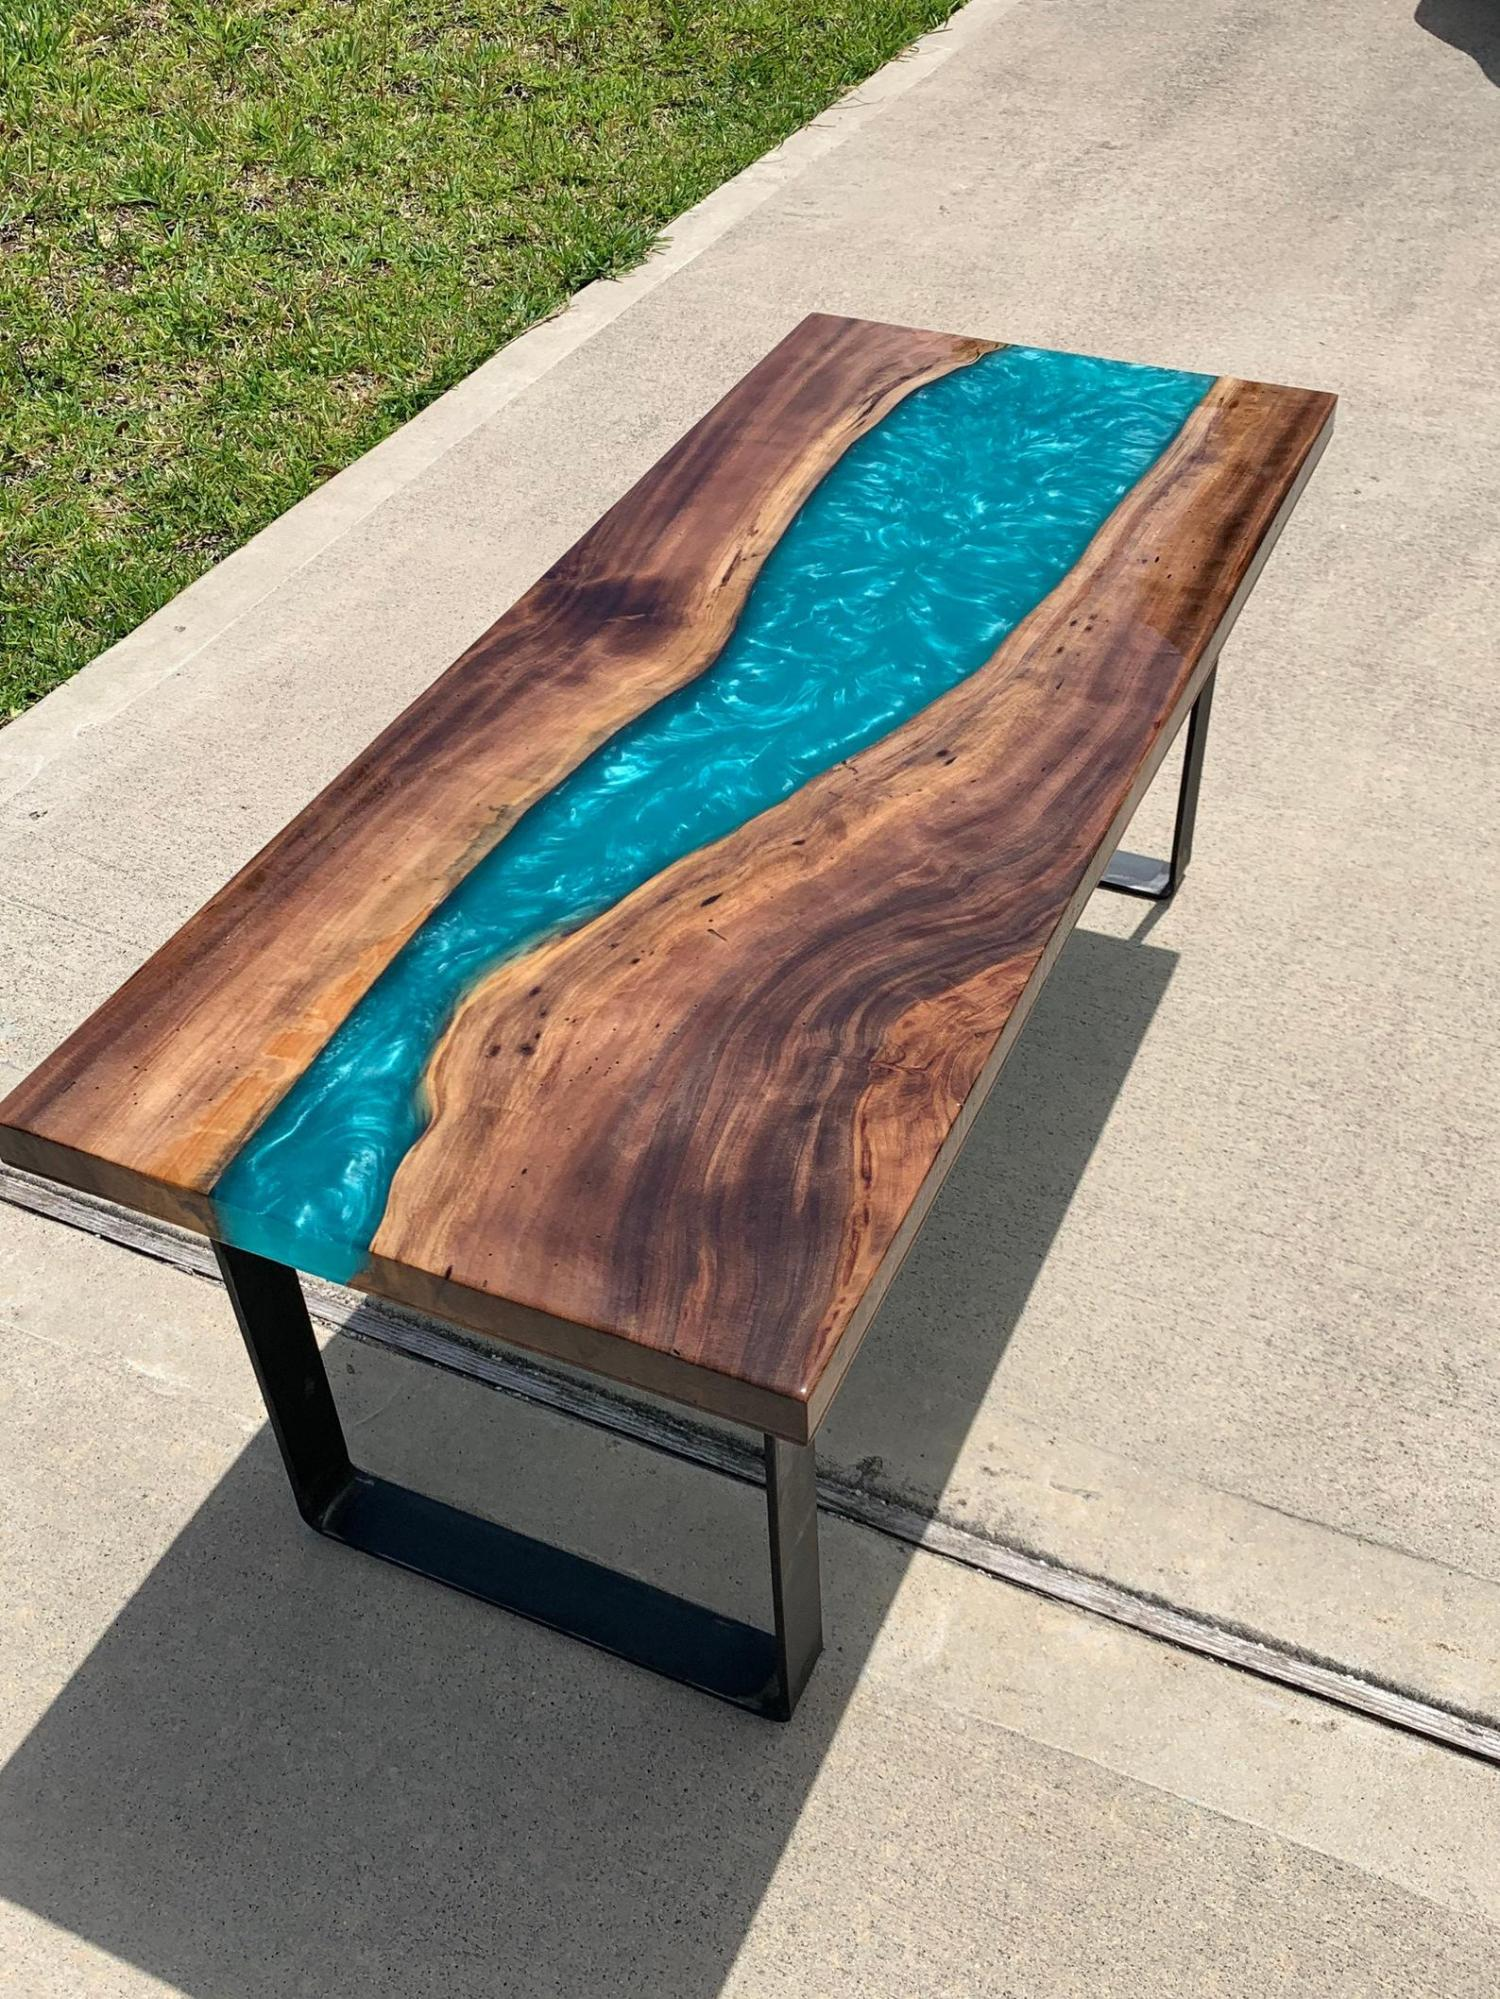 large epoxy table with a beautiful blue river flowing through it